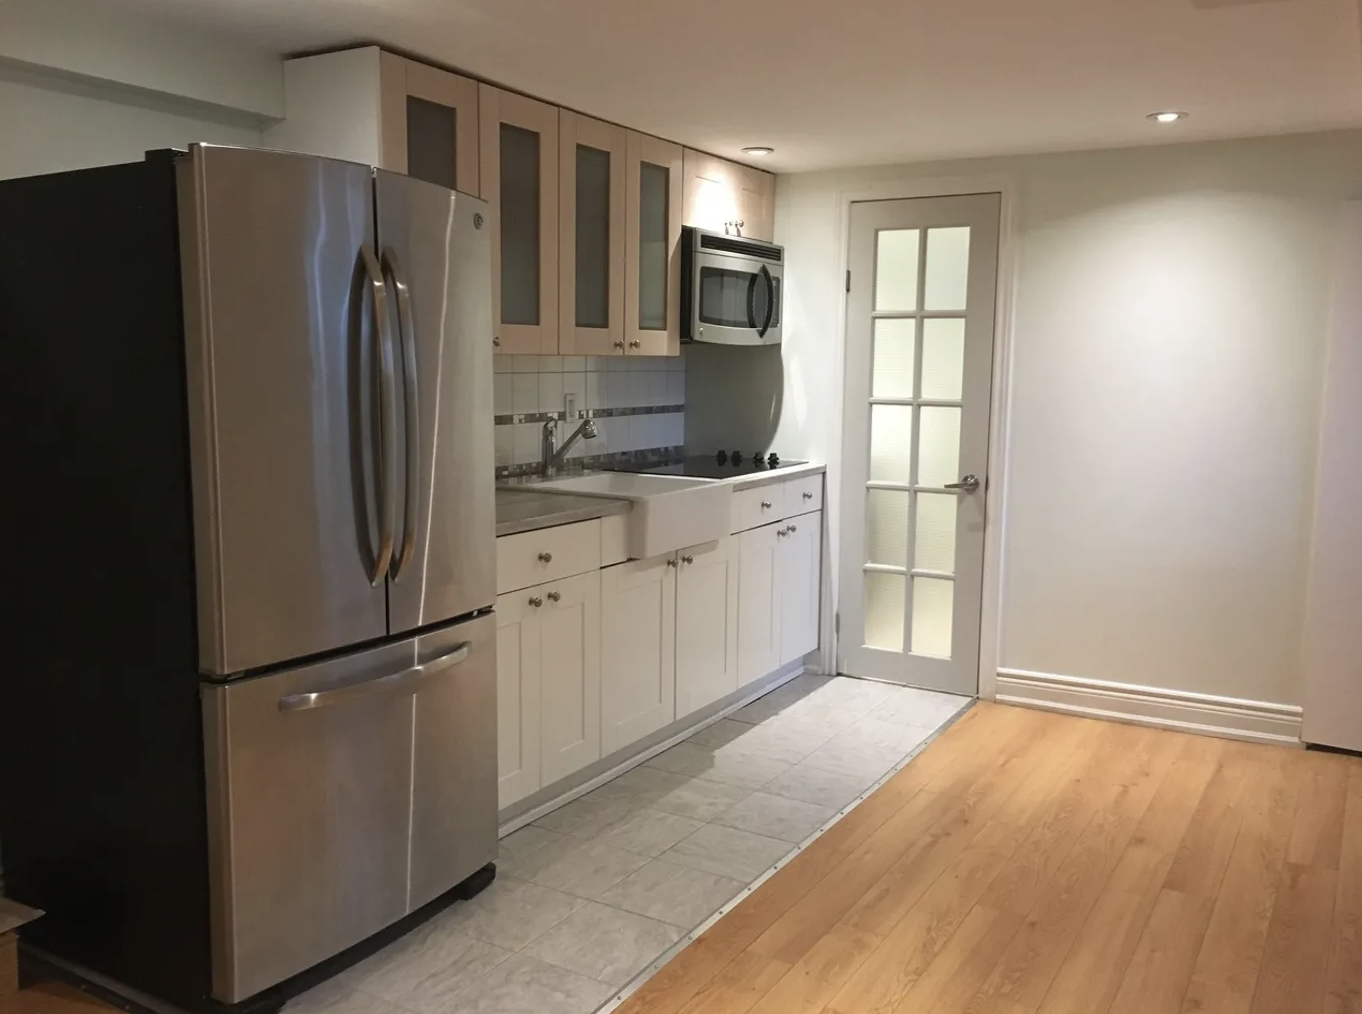 107-willow-ave-kitchen-2